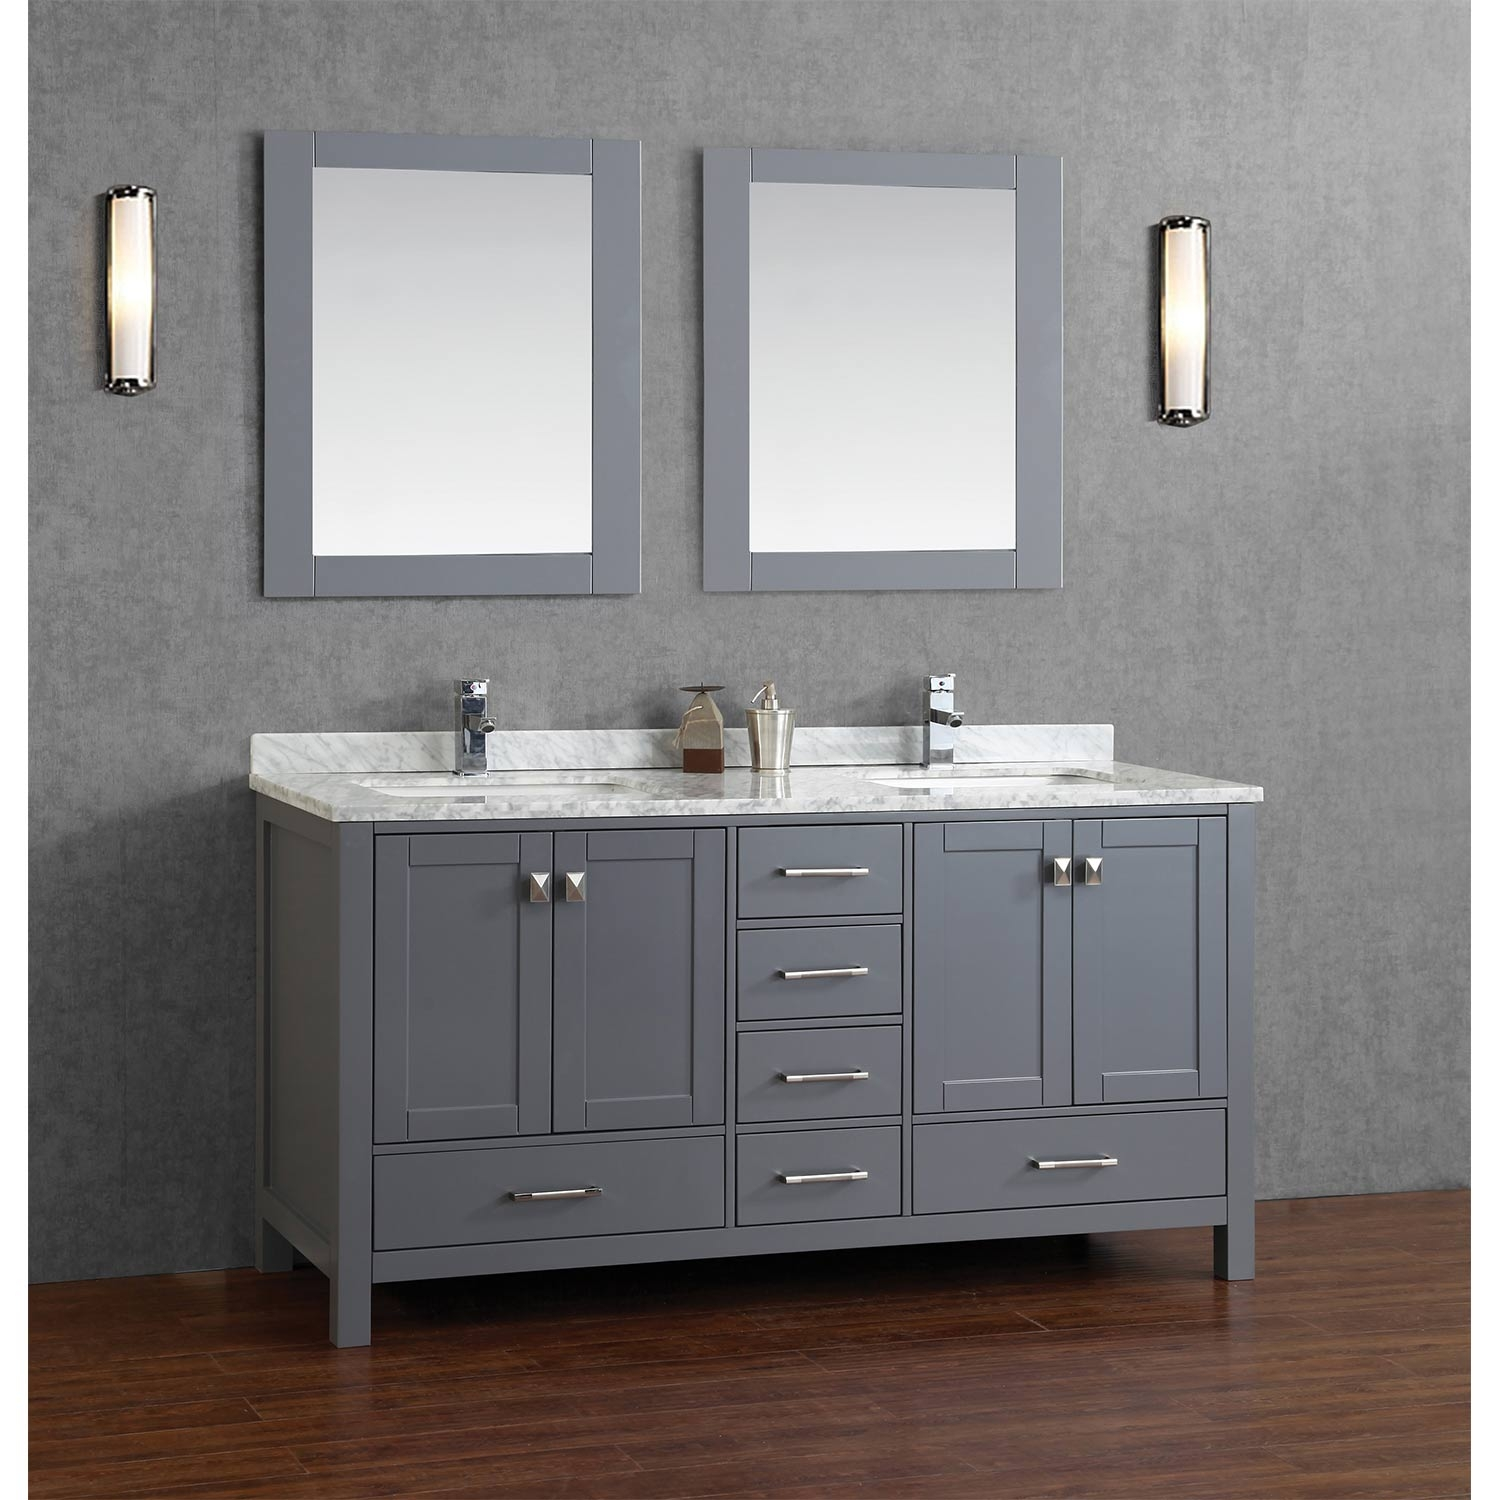 Real Wood Bathroom Vanity Units